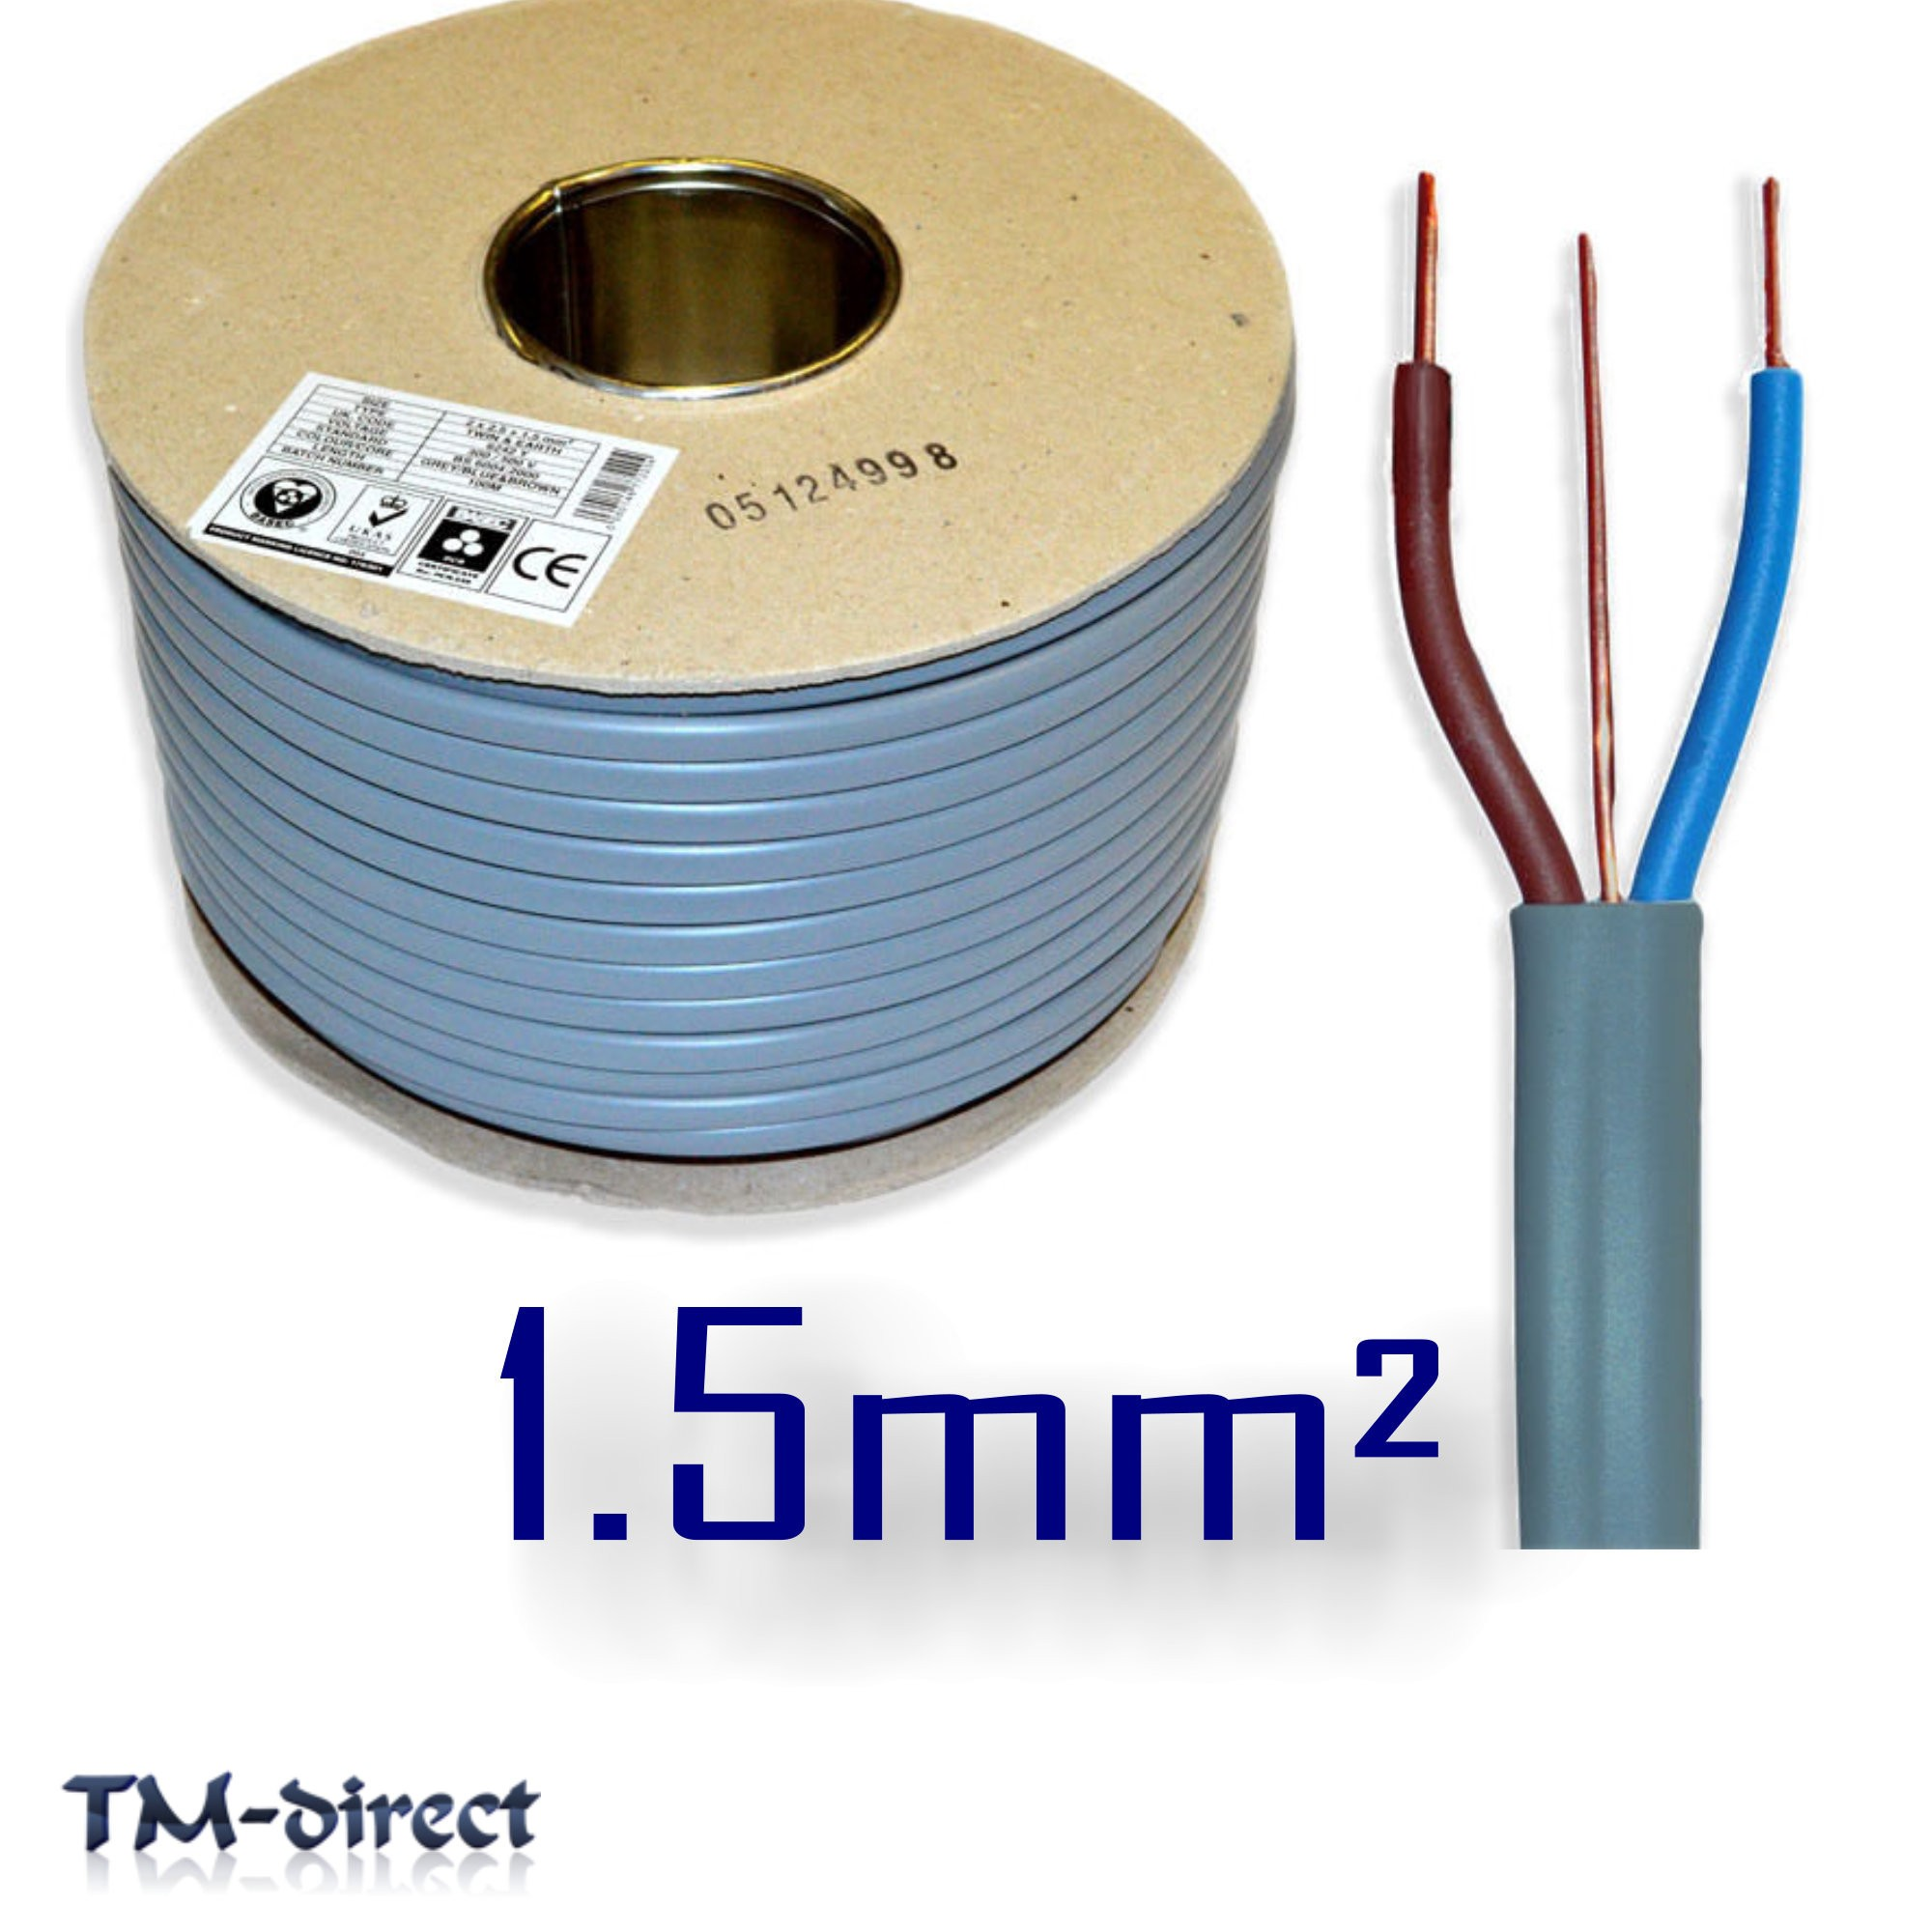 hight resolution of 1 5mm sq 6242y grey 3 core 2 and earth wire basec certified electric cable t e